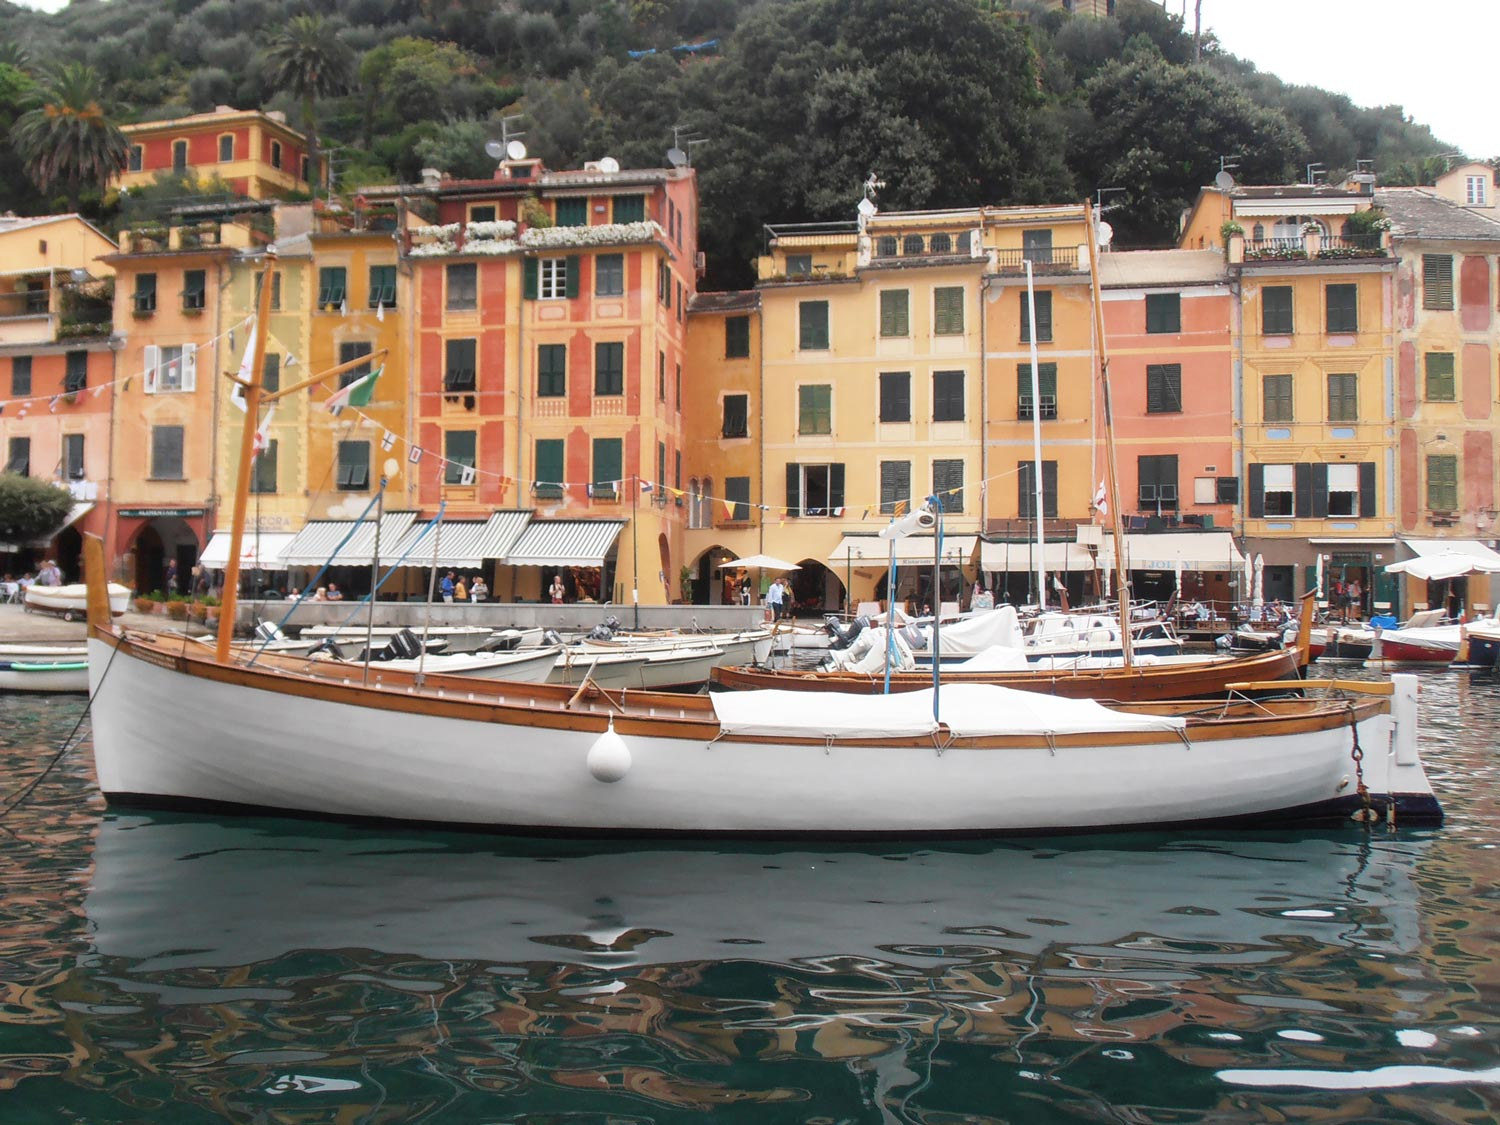 The boats and buildings at Portofino marina